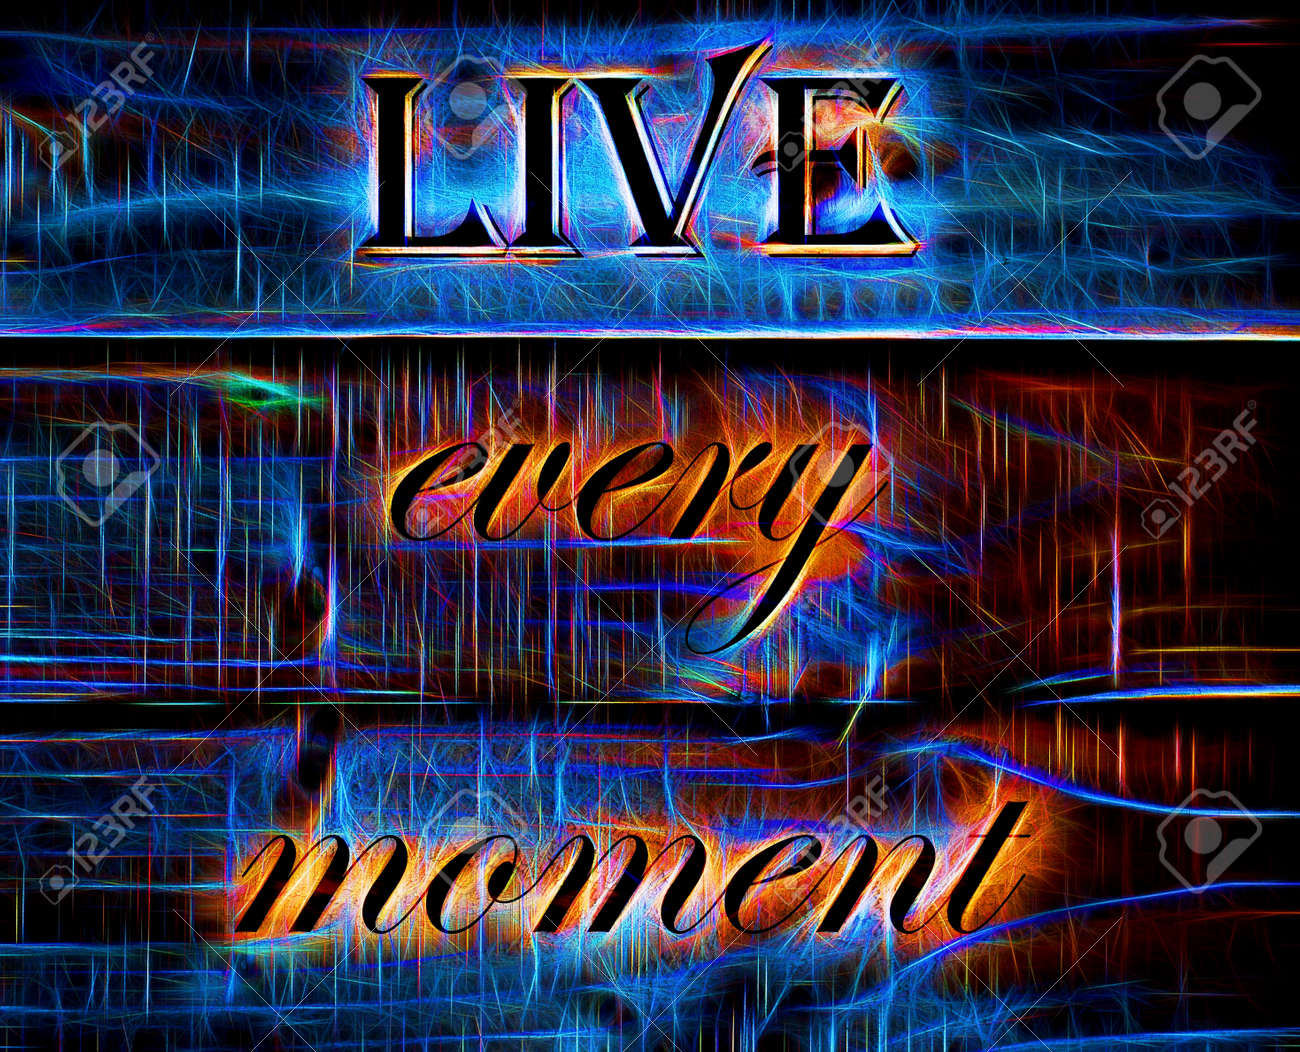 Live Every Moment Quote On Neon Background Stock Photo Picture And Royalty Free Image Image 38677990 Neon blue skull wallpaper viewing gallery 1920x1200. 123rf